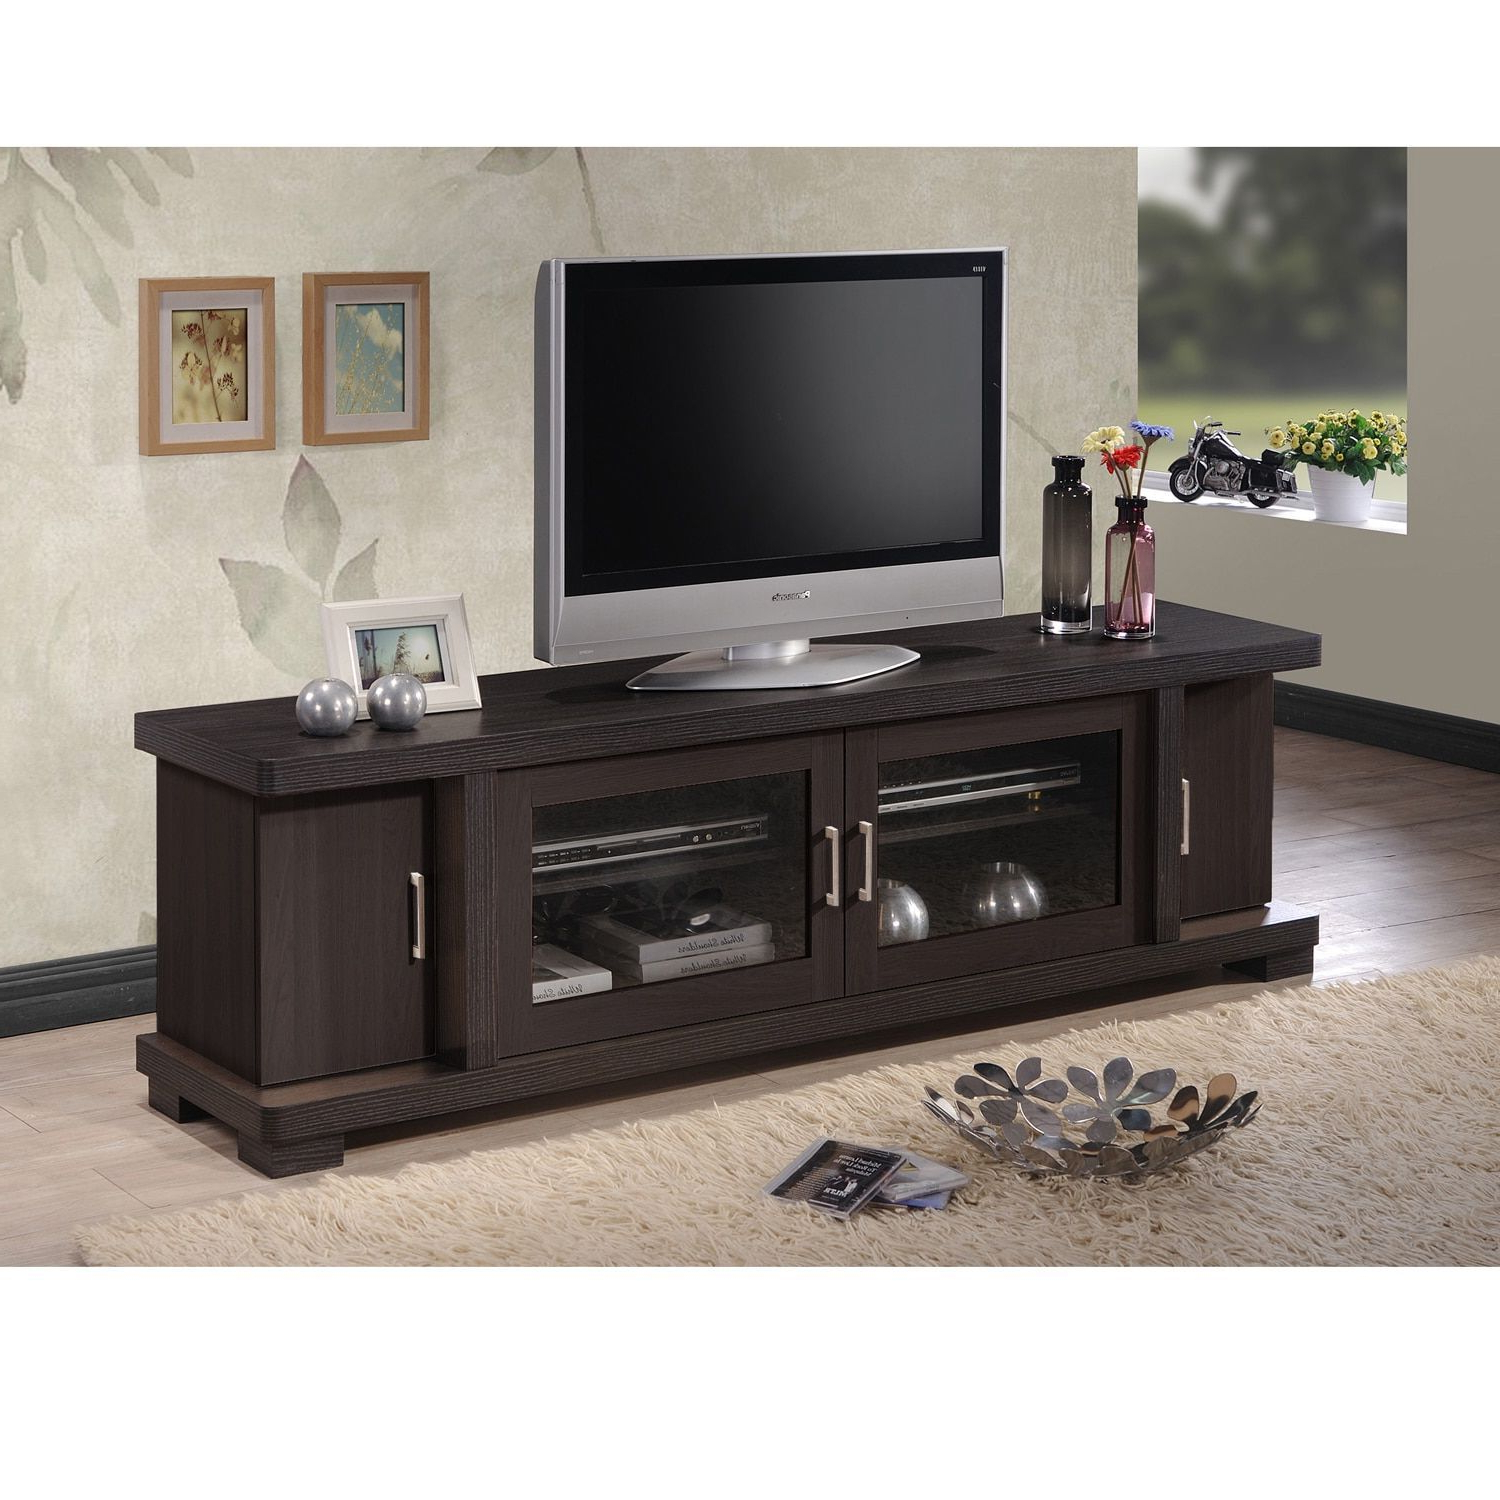 Well Known Baxton Studio Vega Contemporary 70 Inch Dark Brown Wood Tv Cabinet For Glass Tv Cabinets With Doors (View 19 of 20)